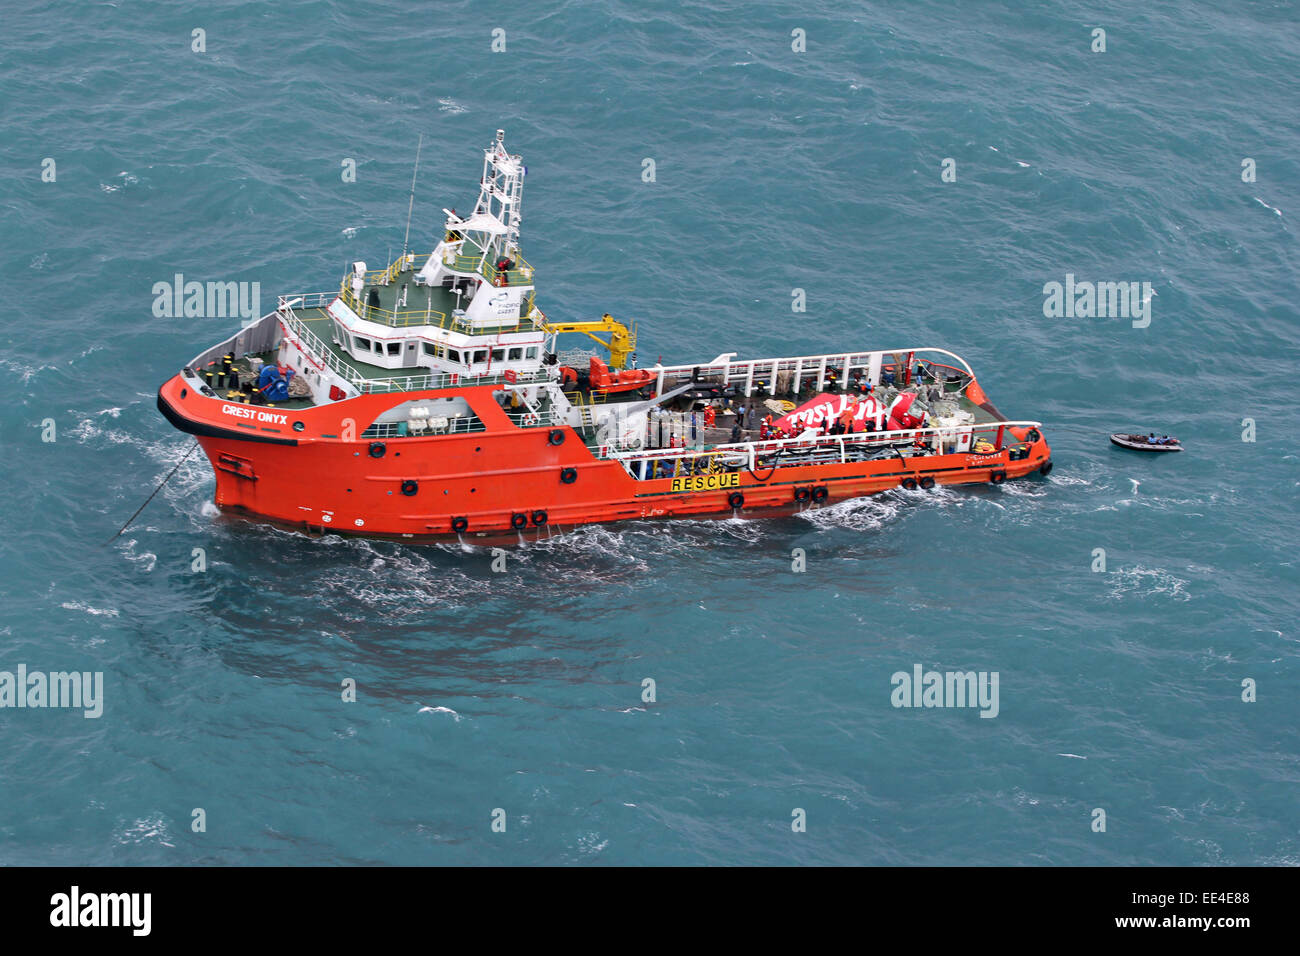 Offshore supply ship the Crest Onyx holds the tail section of Air Asia flight 8501 after recovering the piece from - Stock Image